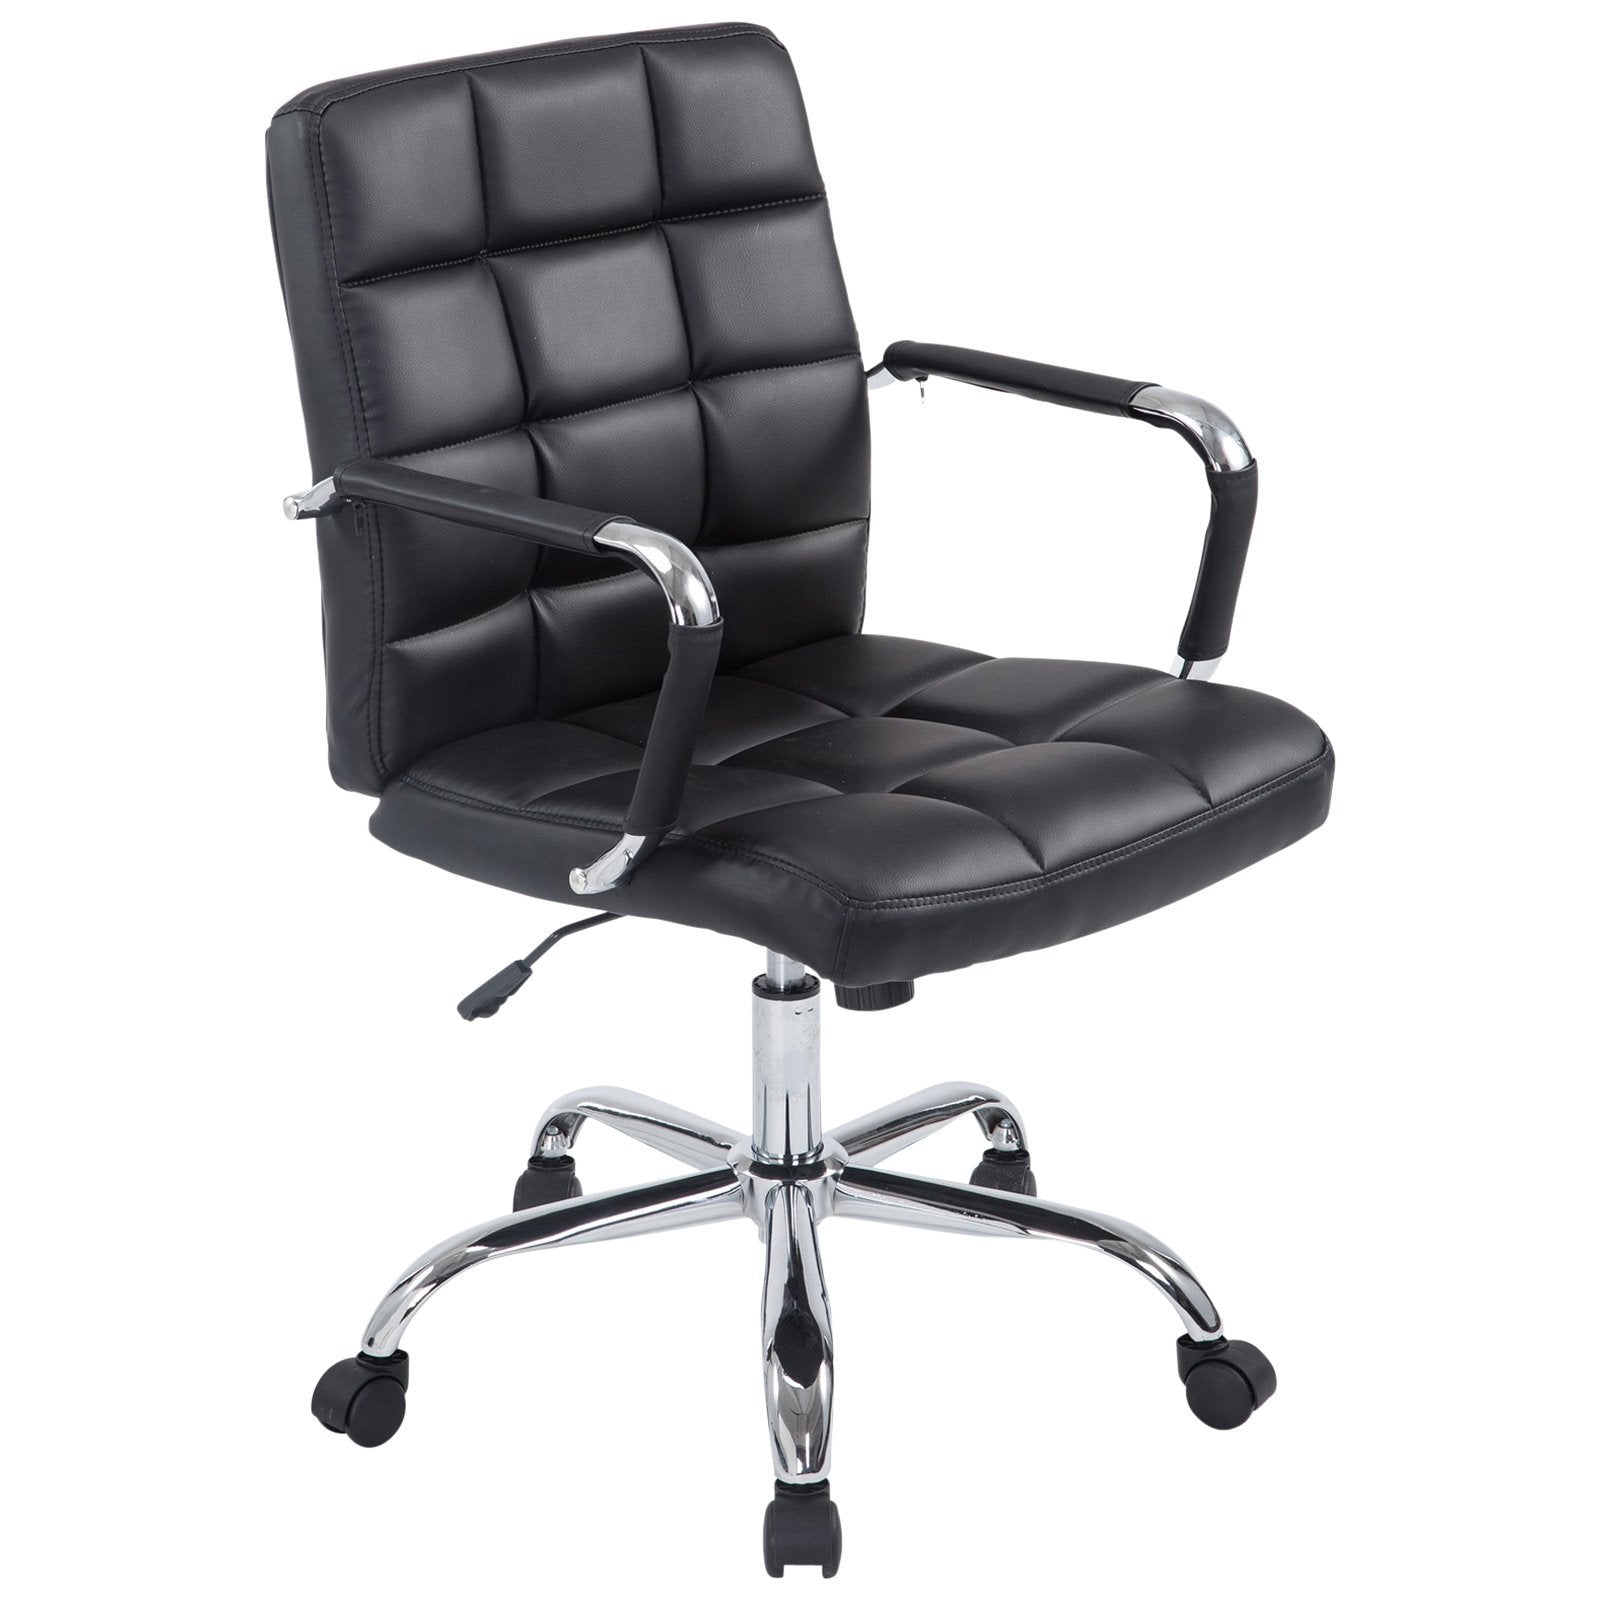 back dp chair in office designs ae chairs amazon electronics high